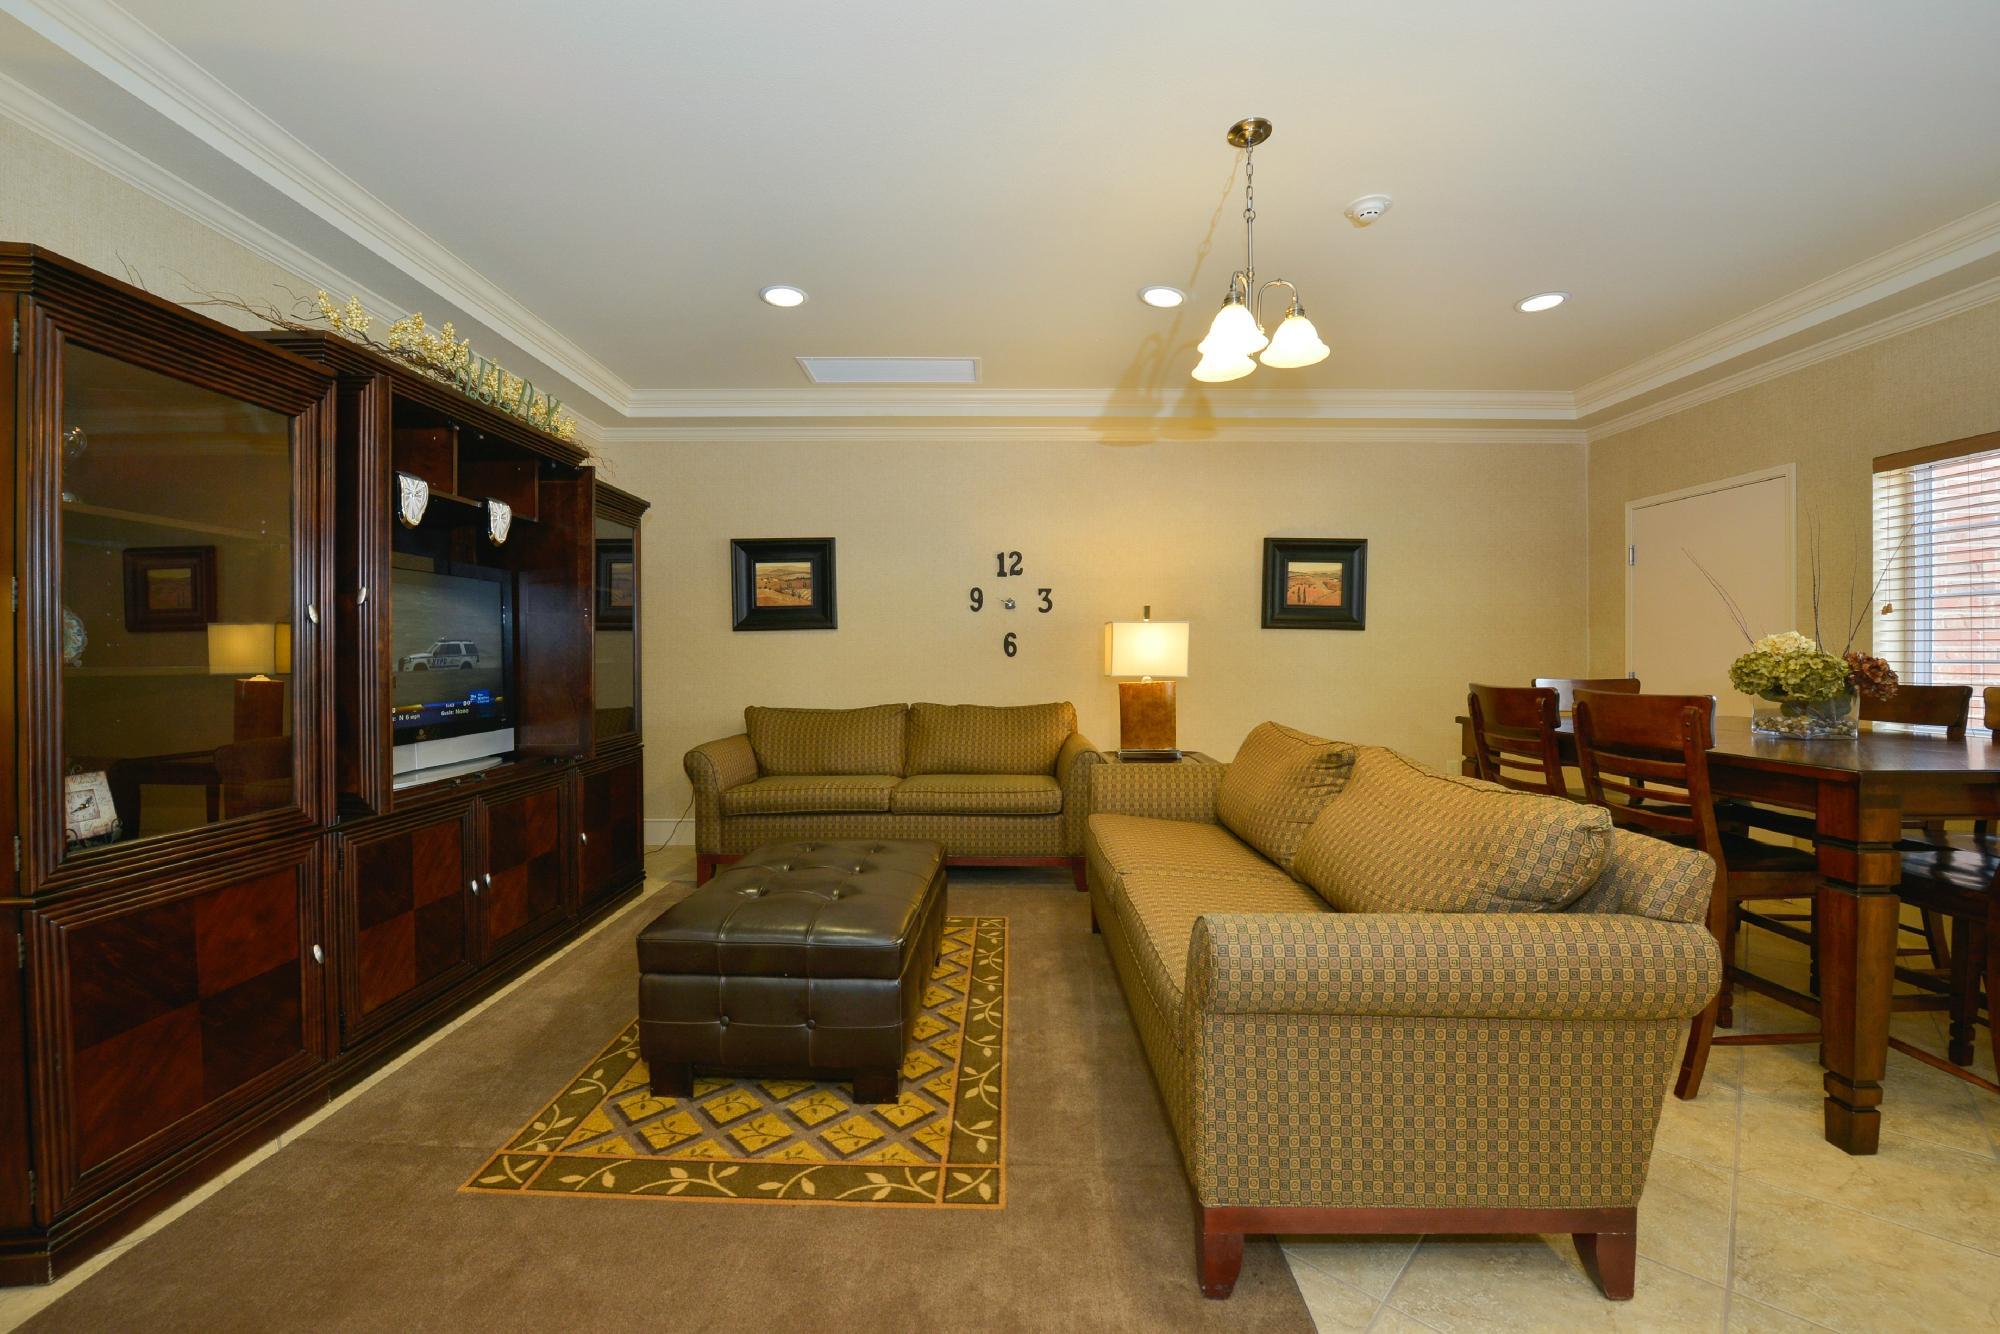 Candlewood Suites Springfield MO 2017 Hotel Review